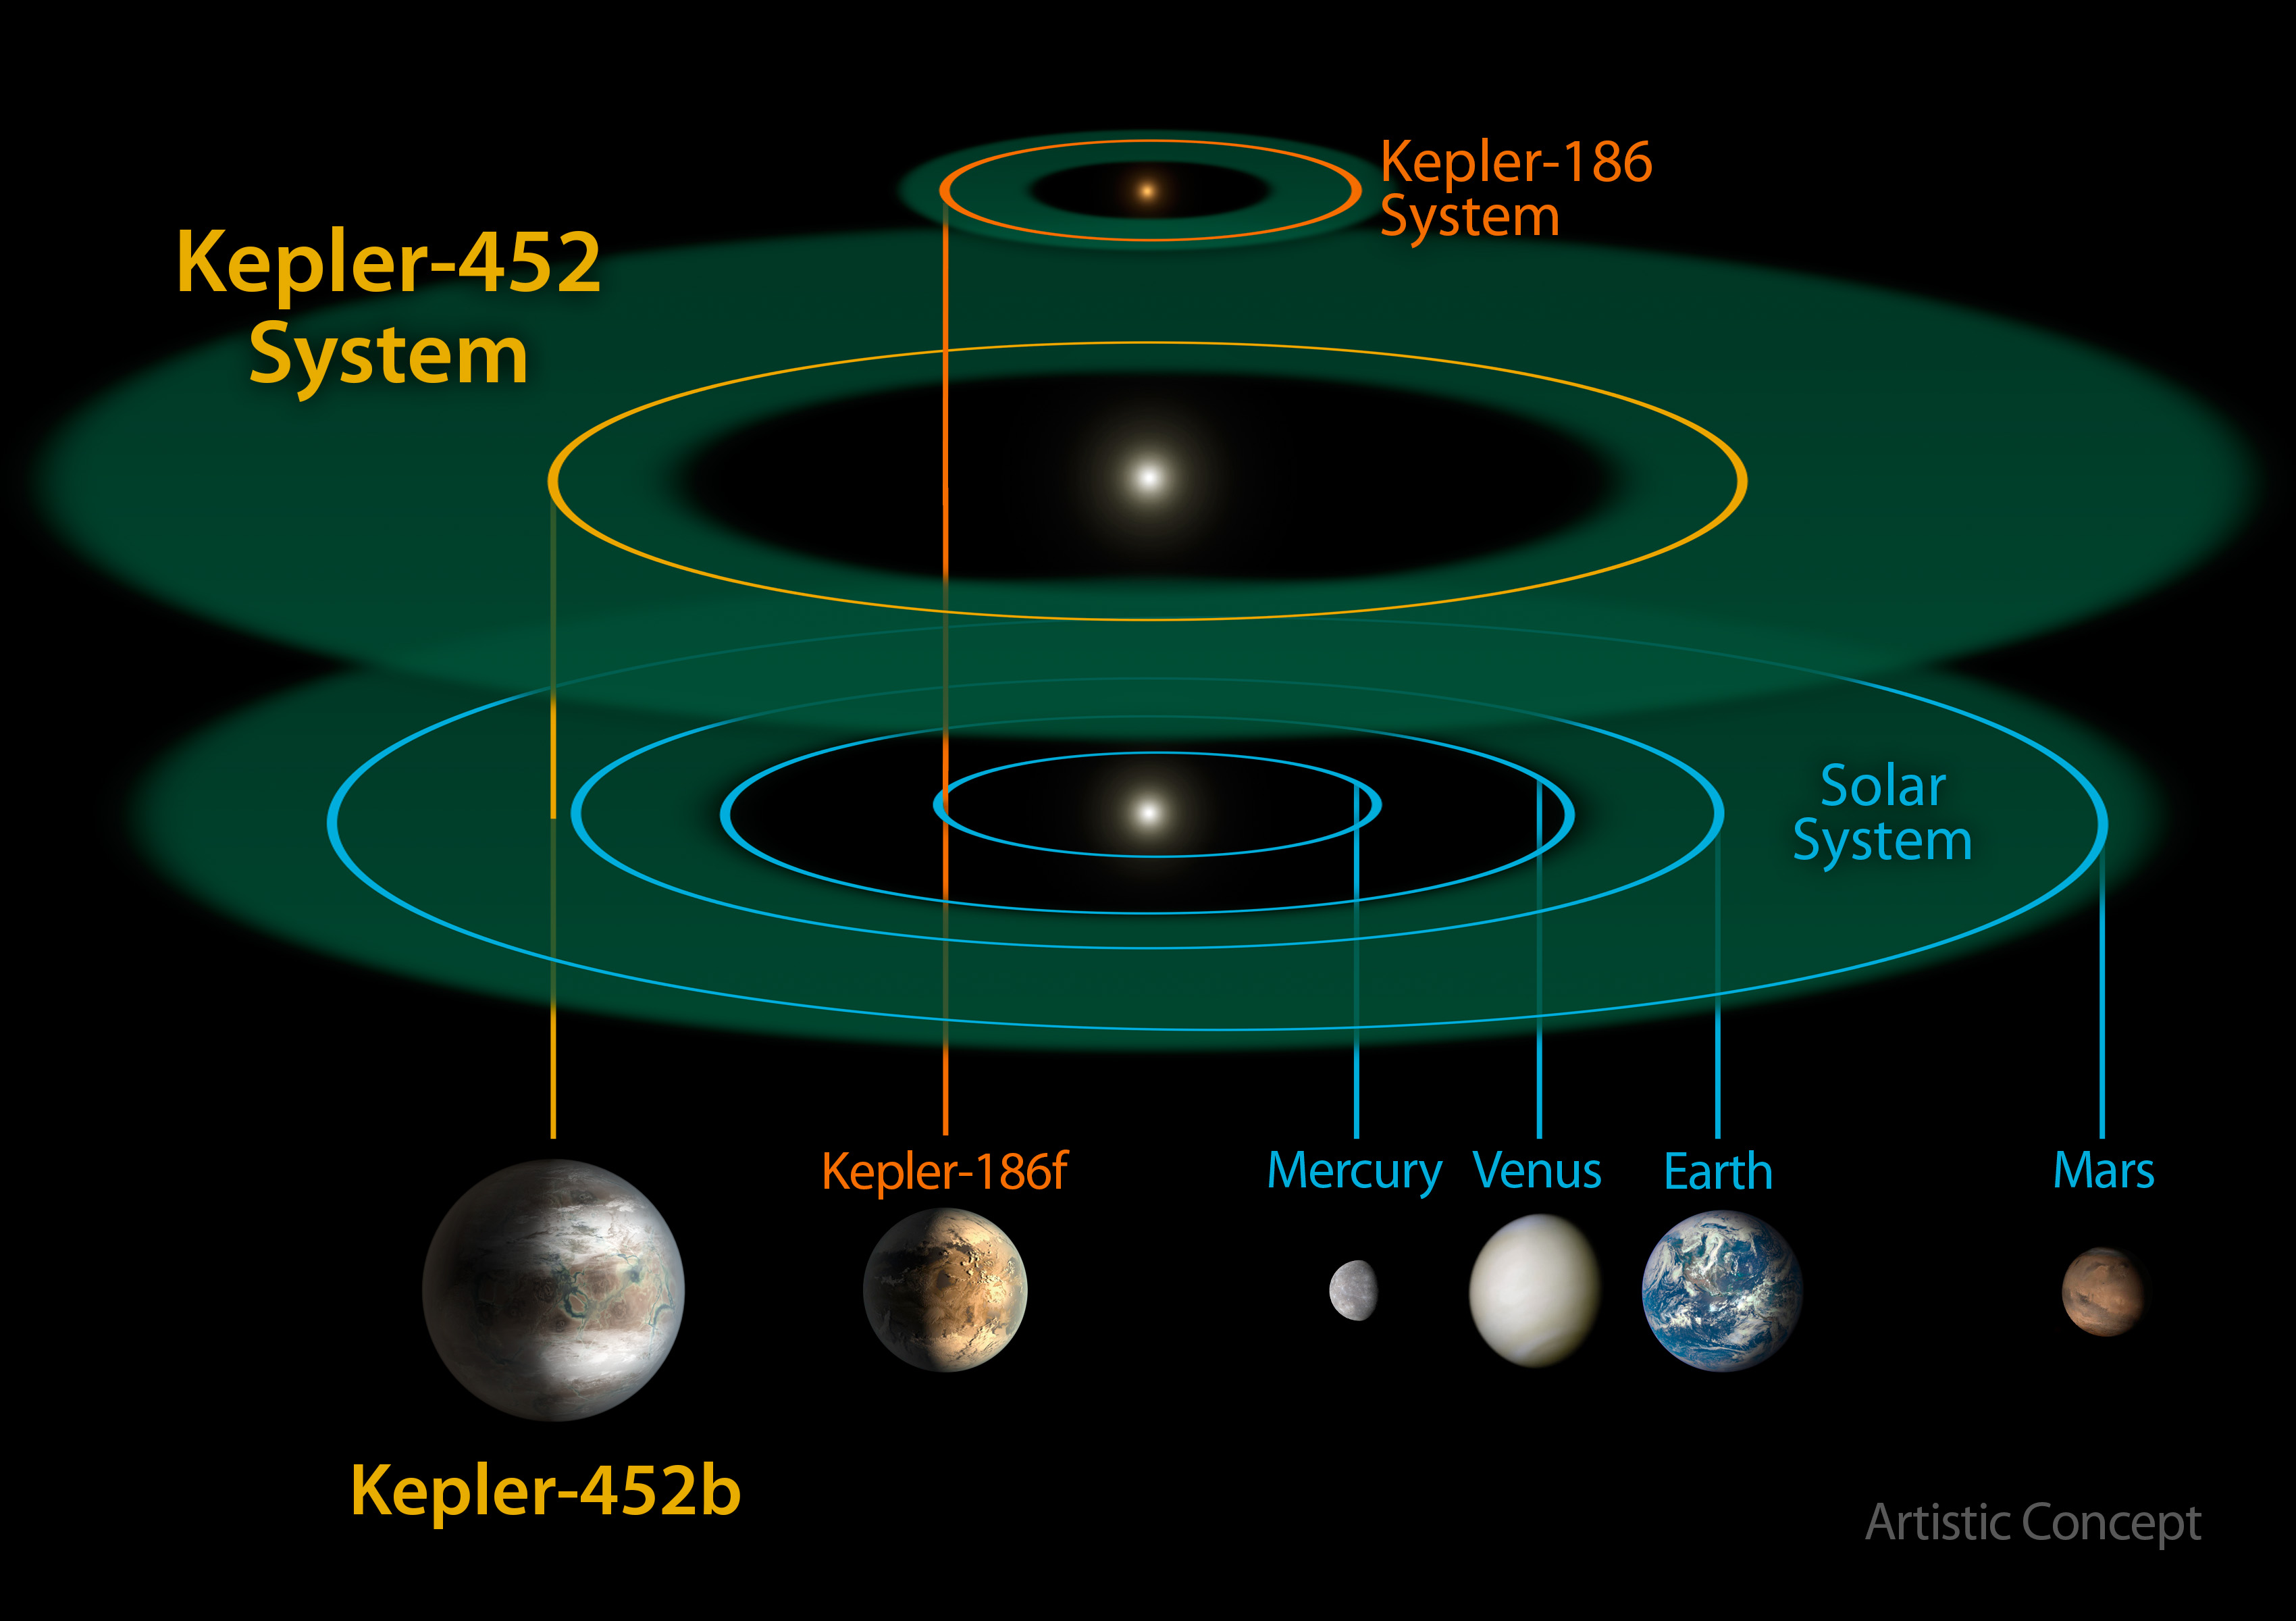 Meet Kepler-452b: Earth's older, bigger cousin